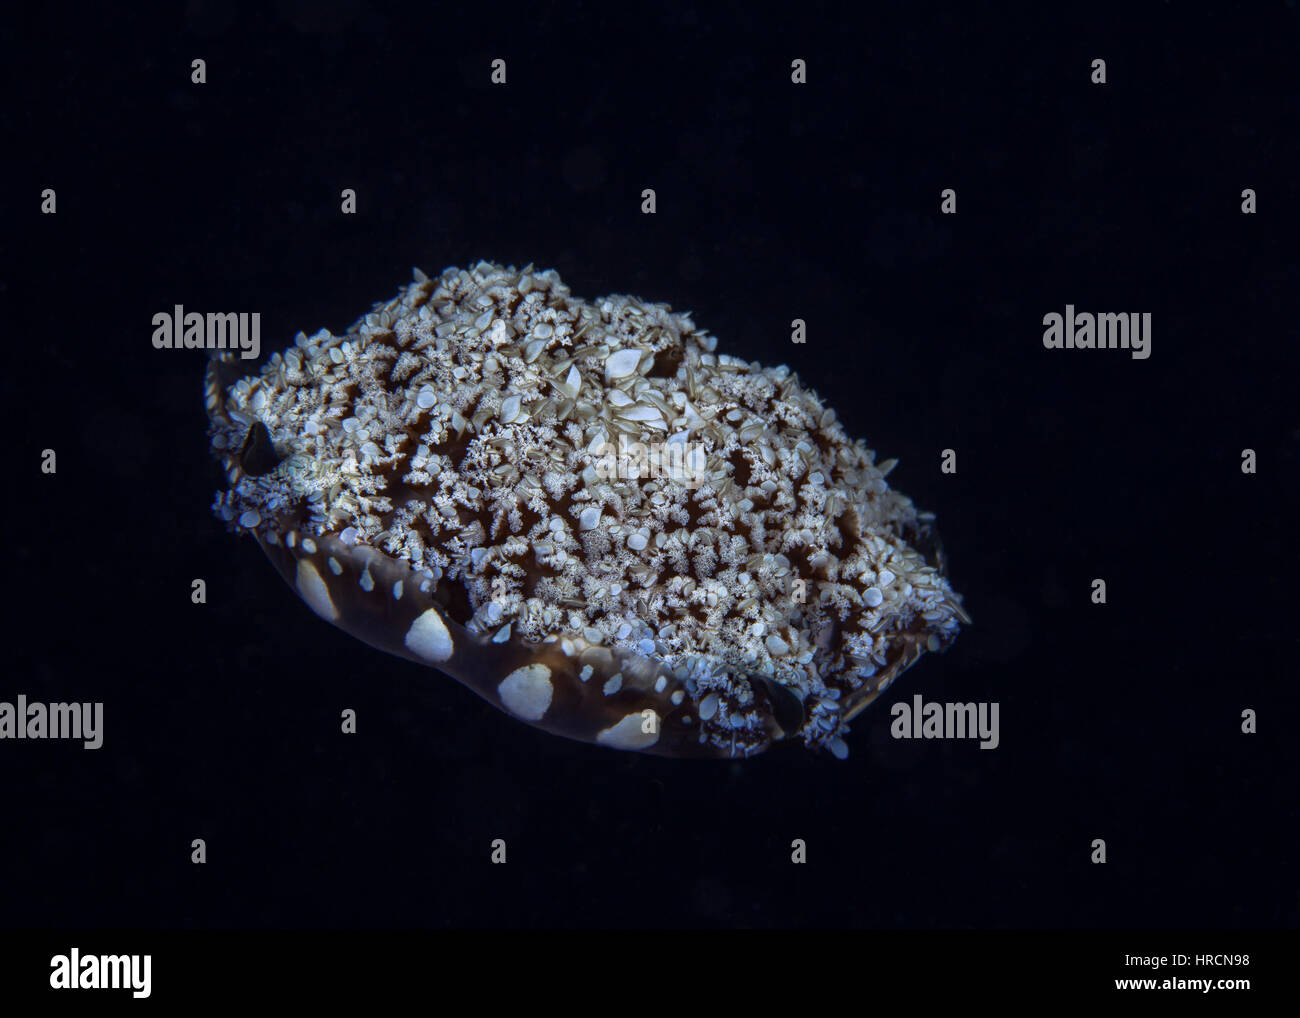 Upside-down jellyfish (Cassiopeia sp.) floating in mid-water appears unearthly. Raja Ampat, Indonesia. - Stock Image